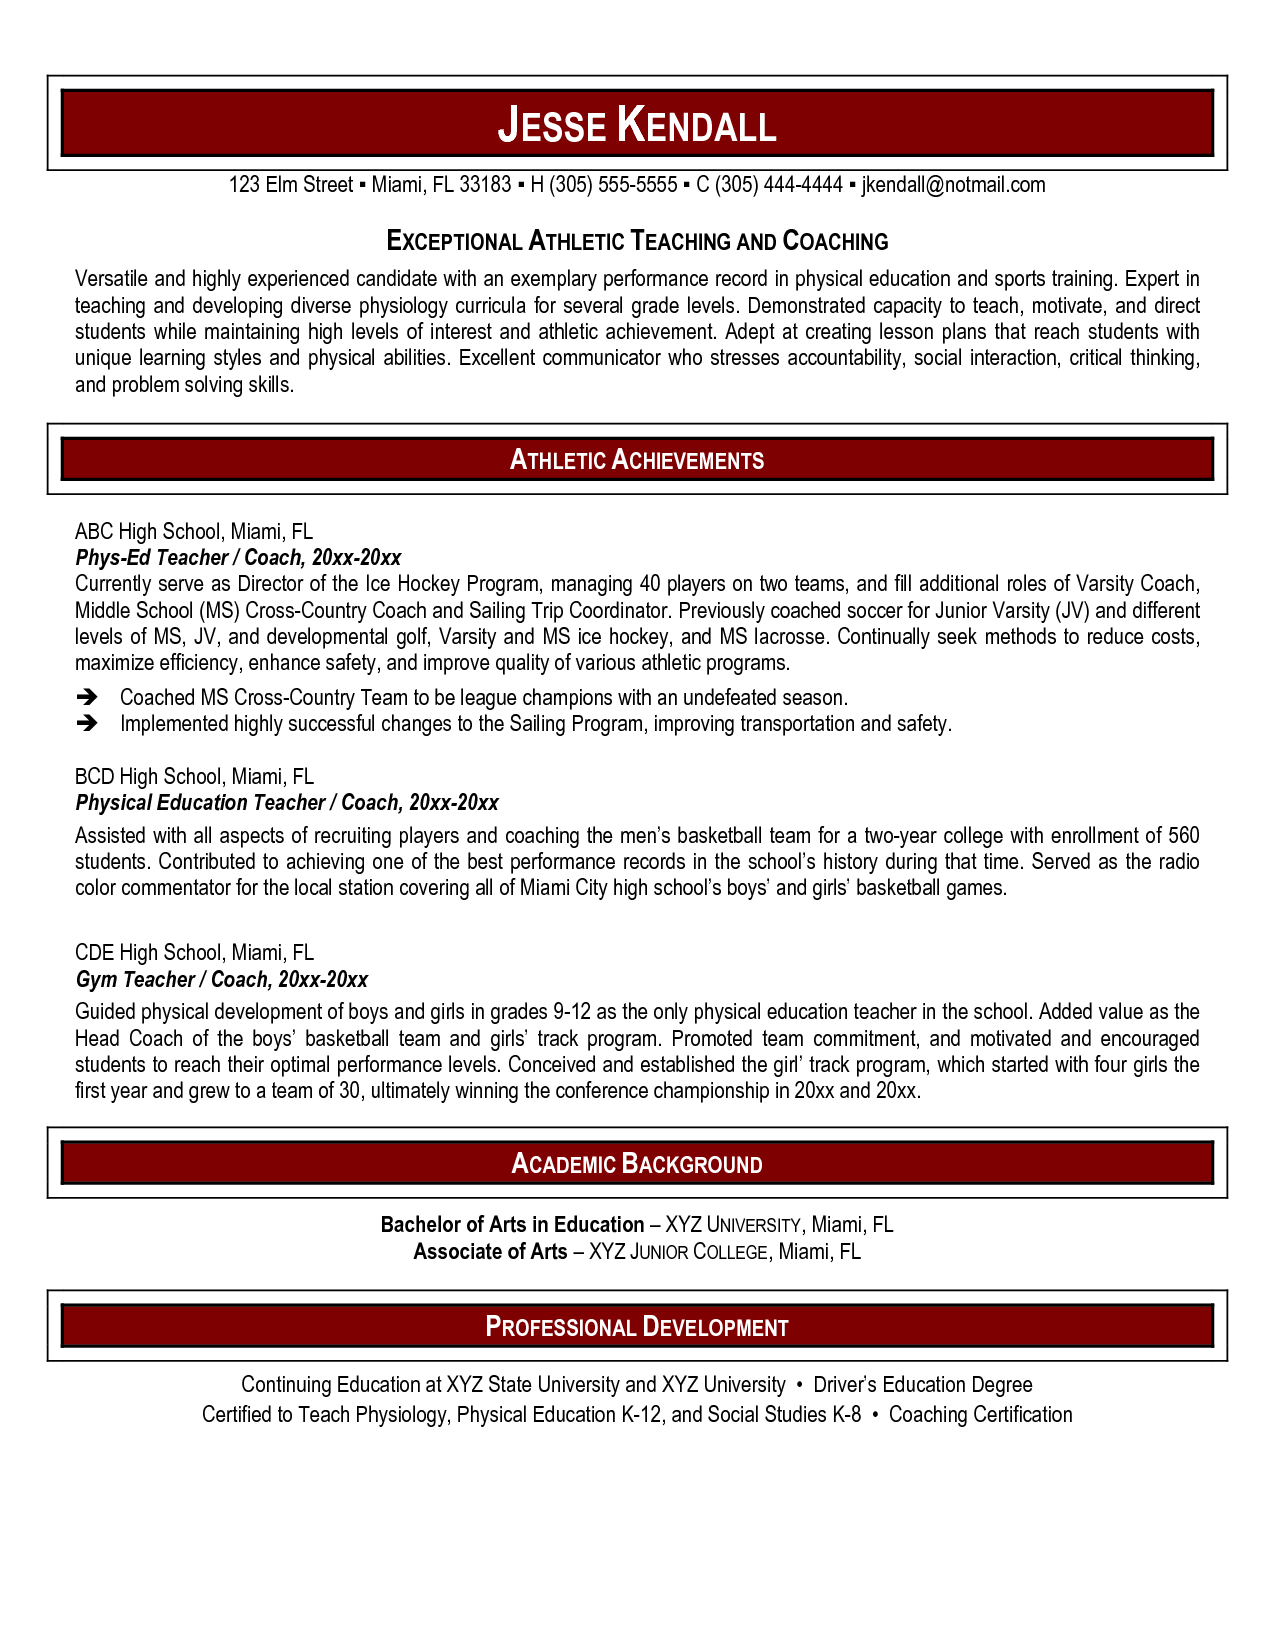 Art Teacher Resume Examples - http://www.resumecareer.info/art ...